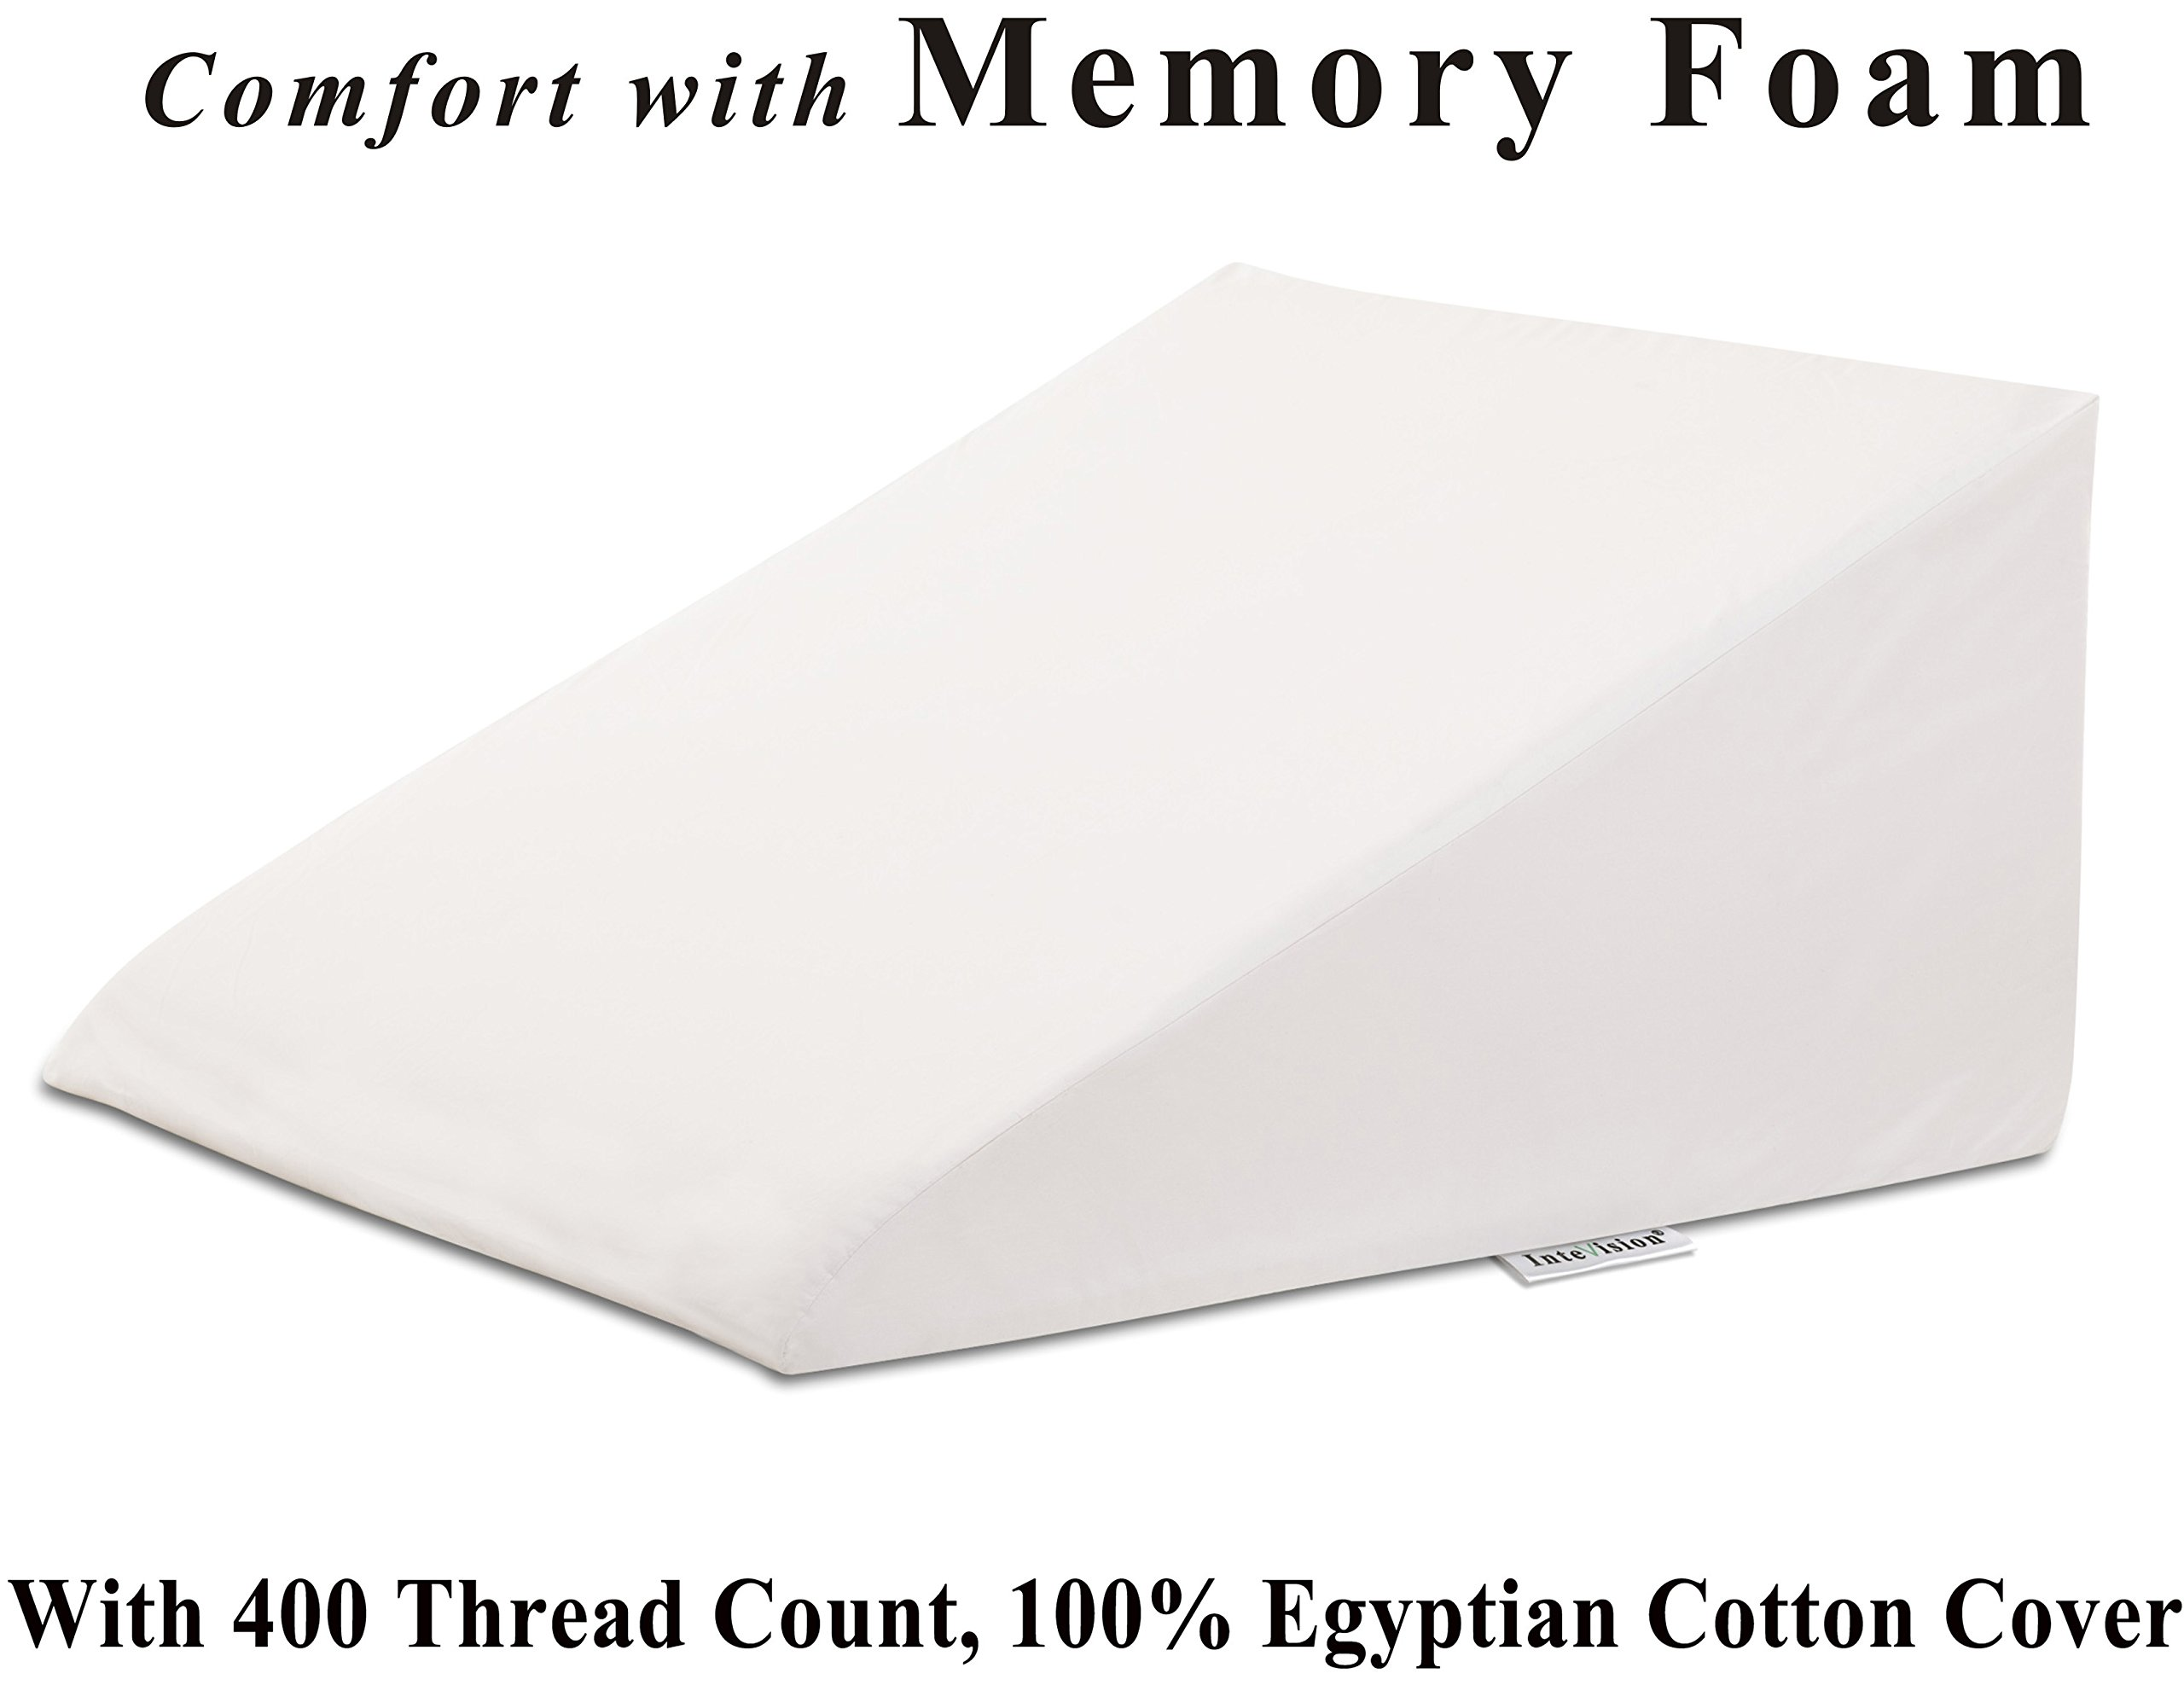 InteVision Extra-Large Foam Wedge Bed Pillow (33'' x 30.5'' x 12''. Color: White) with High Quality, 400 Thread Count, 100% Egyptian Cotton Cover